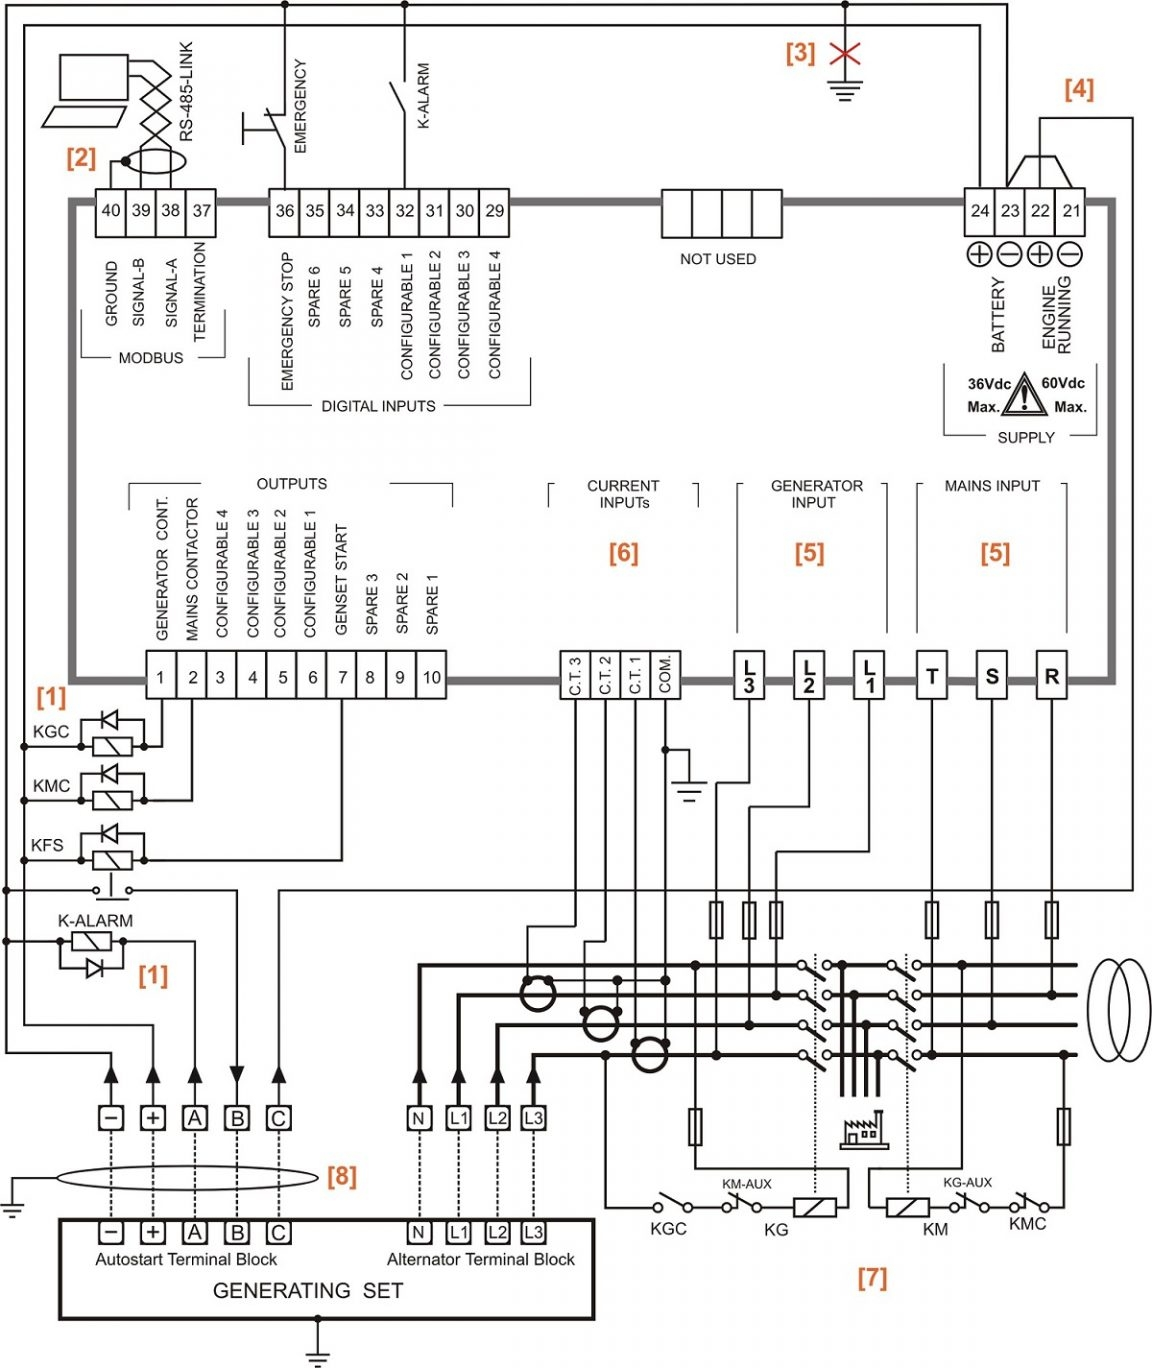 asco transfer switch wiring diagram Download-Asco 7000 Series Automatic Transfer Switch Wiring Diagram Fresh Diagramuto Transfer Switchts Workingnd Control Panel Wiring 1-t